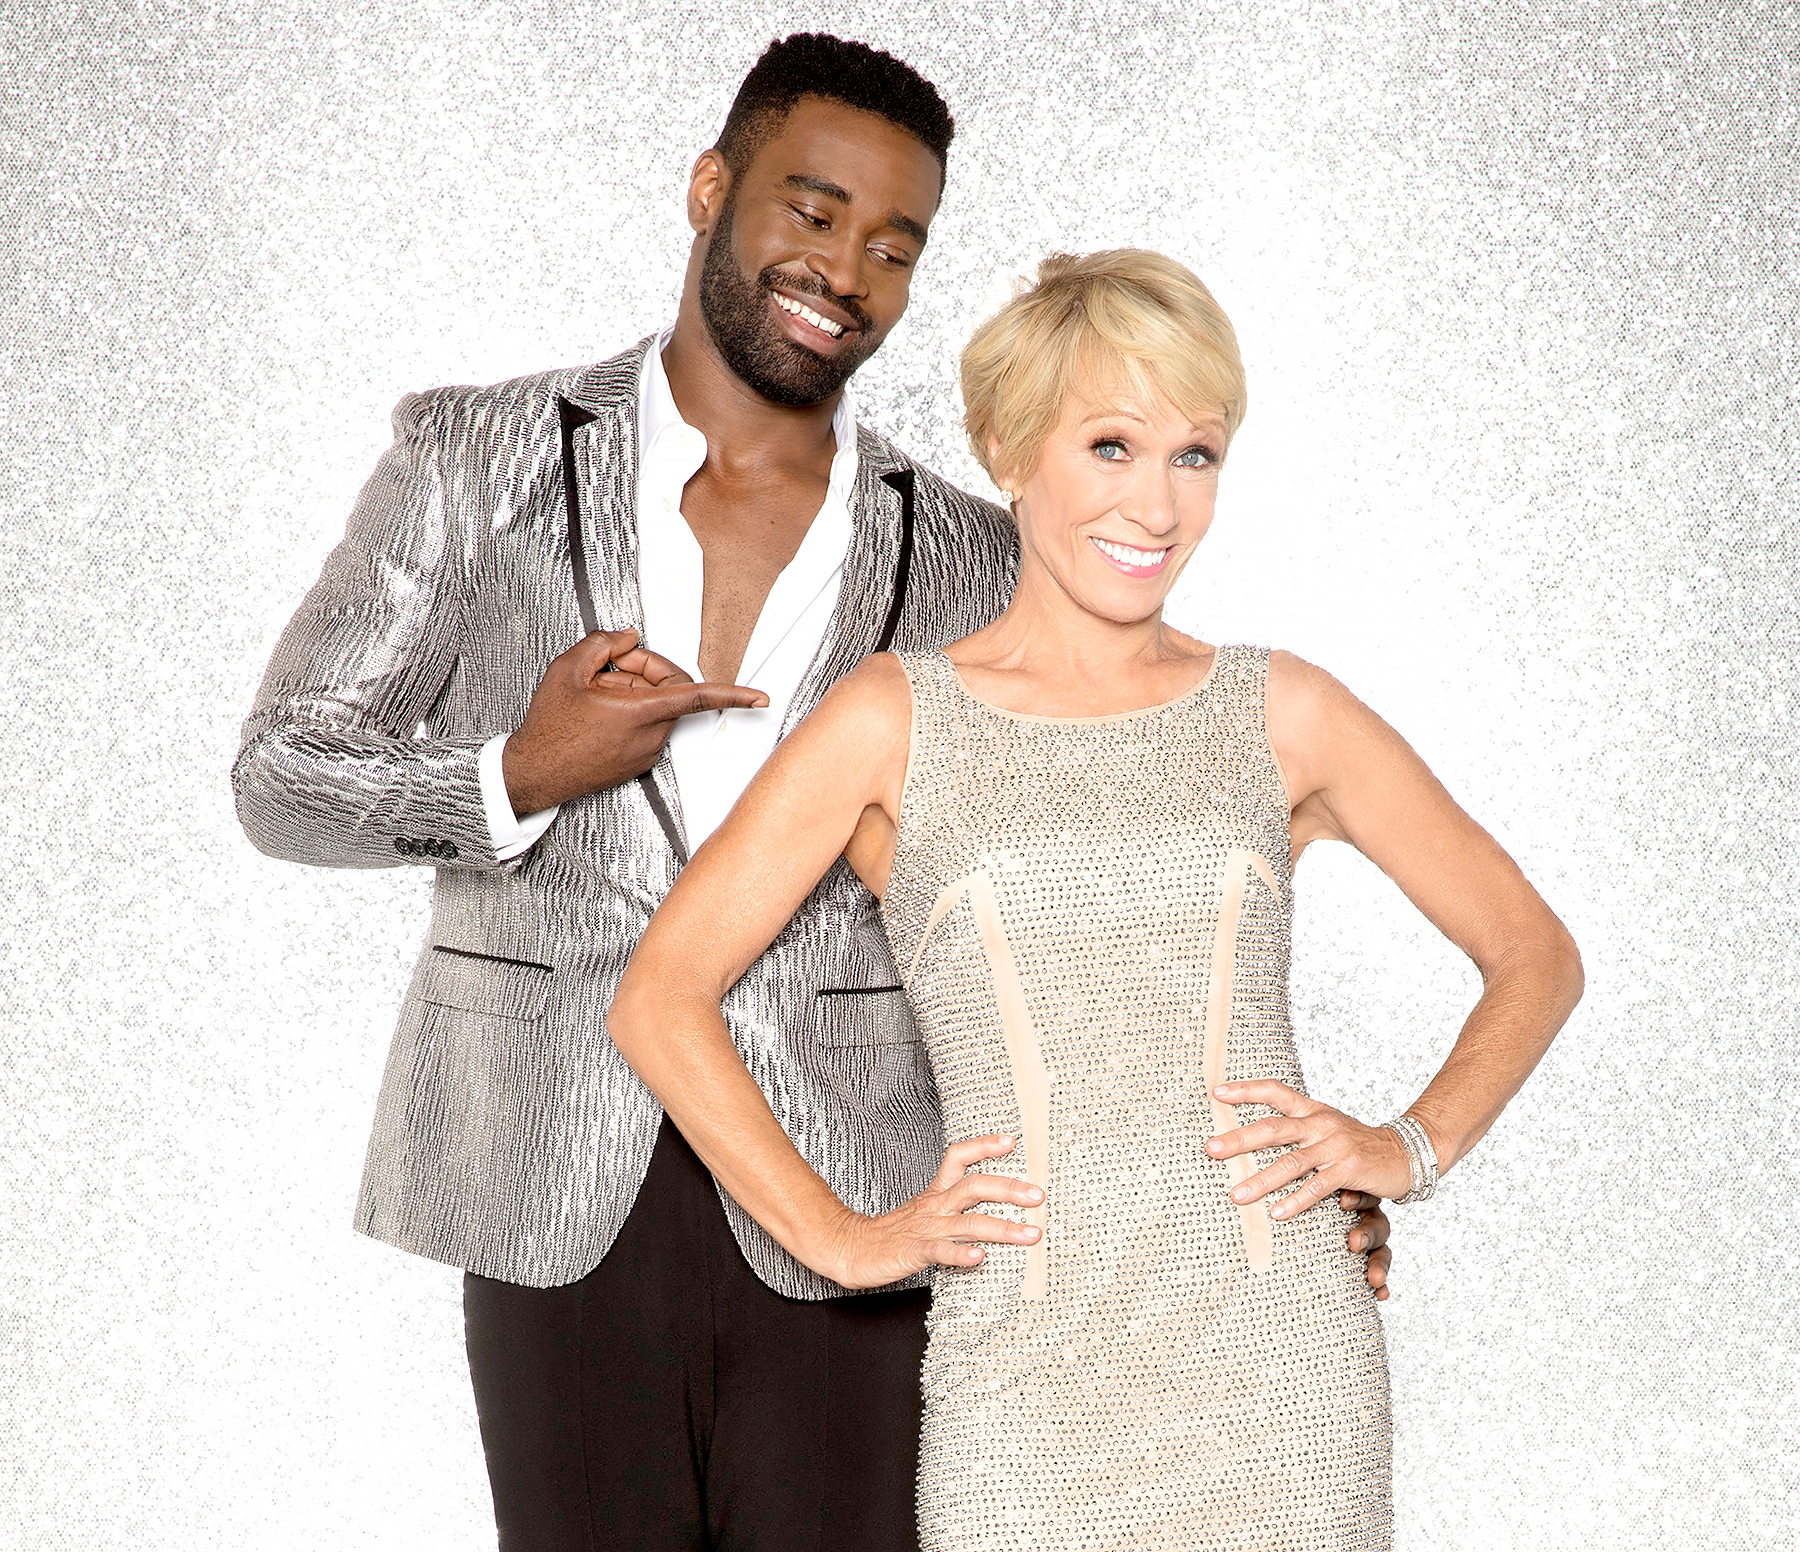 barbara corcoran: 25 things you don't know about me